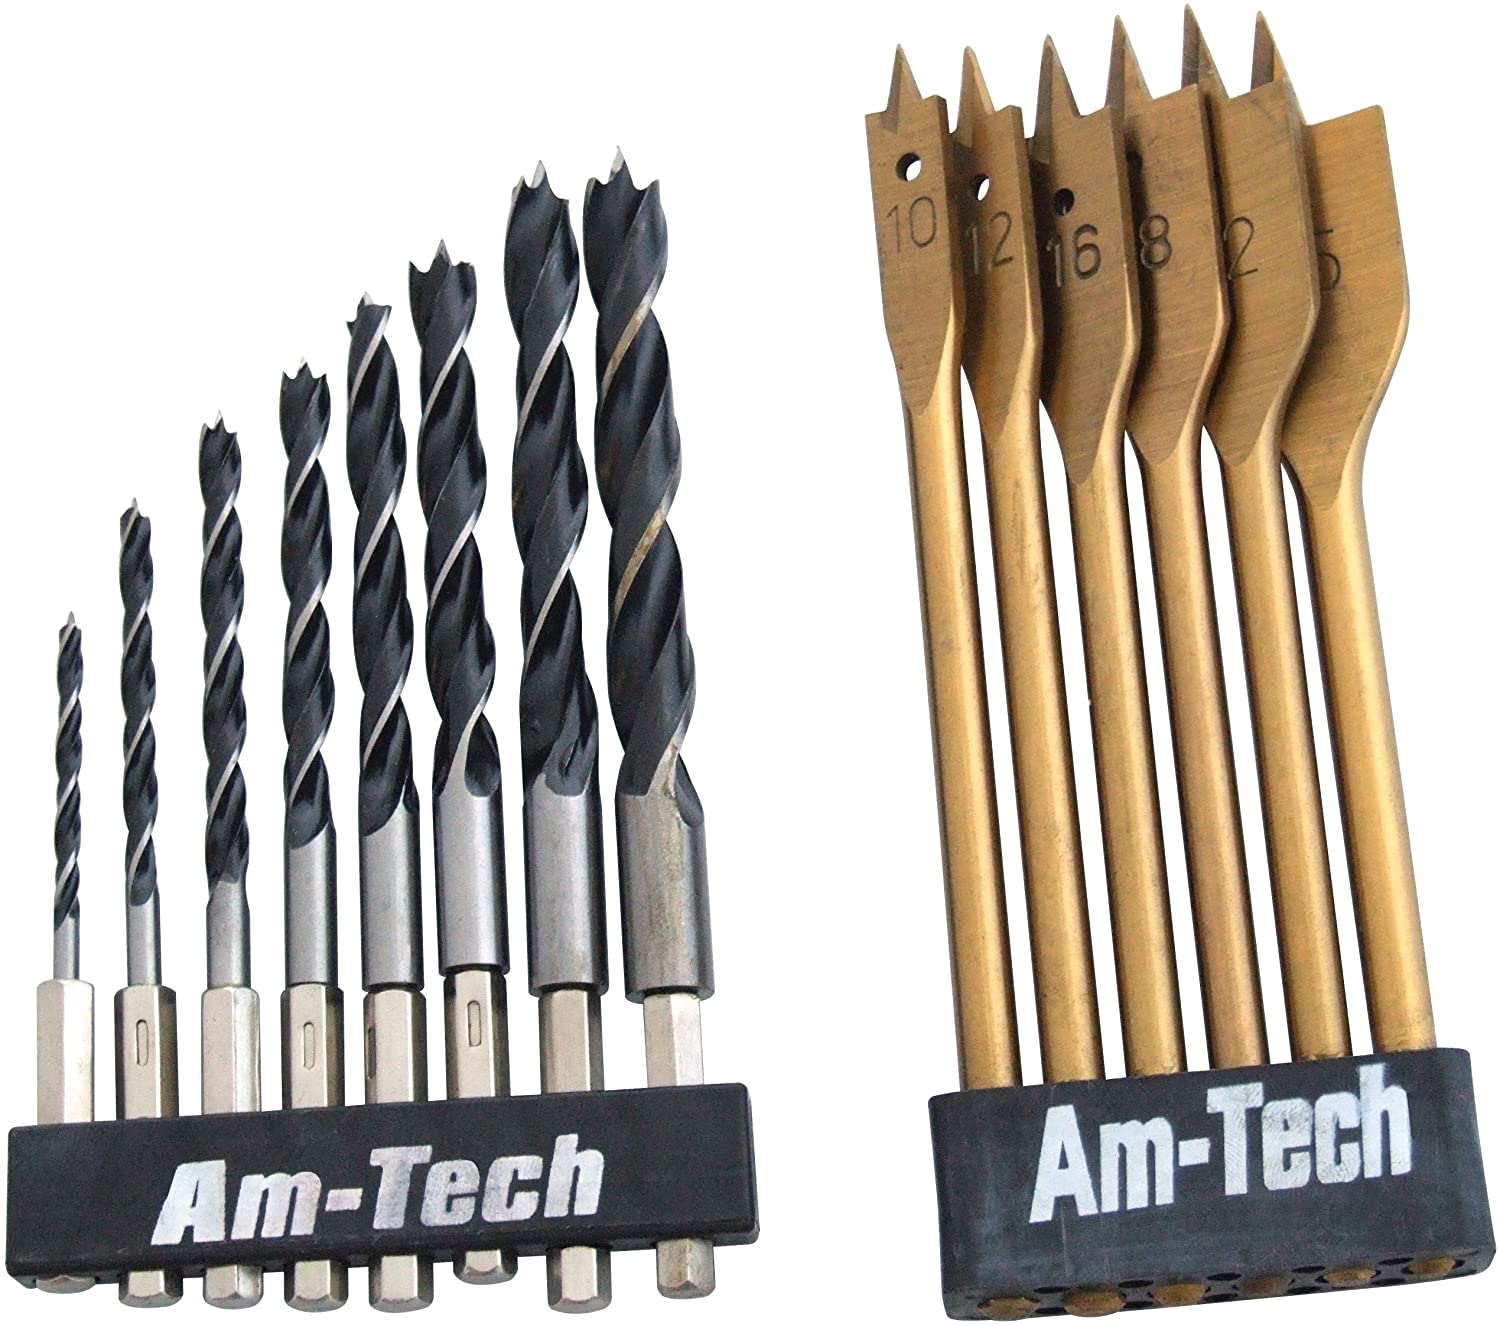 Amtech F1740 Hex Shank Wood Drill Set, 14-Piece AM-F1740